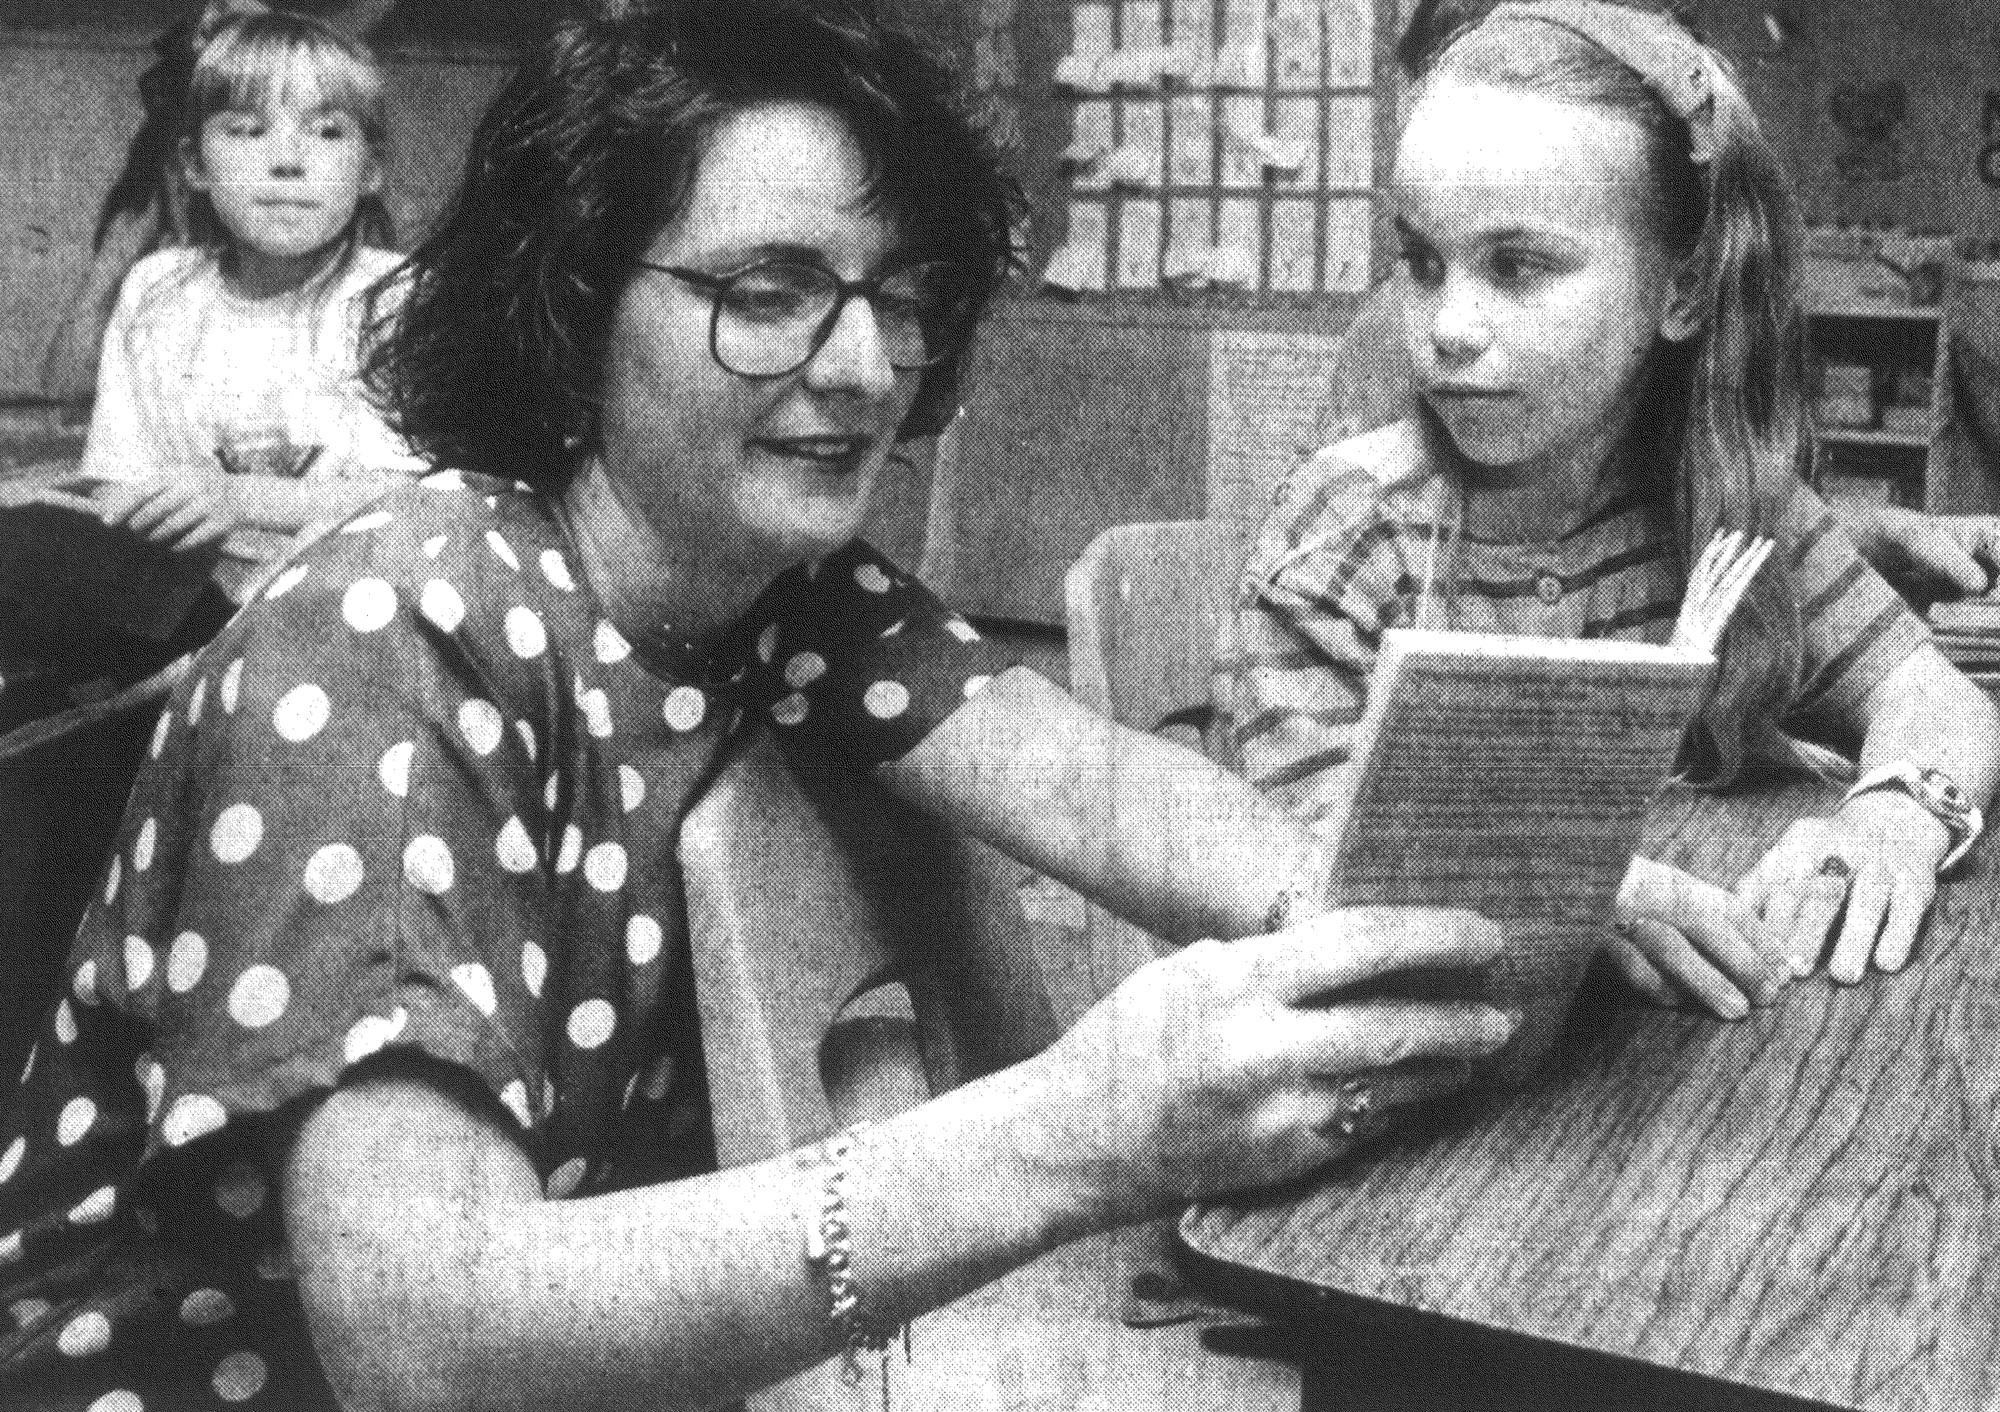 1993 - Suzann Sears helps Millwood Elementary School student Jessica Courtoy with a classroom assignment.